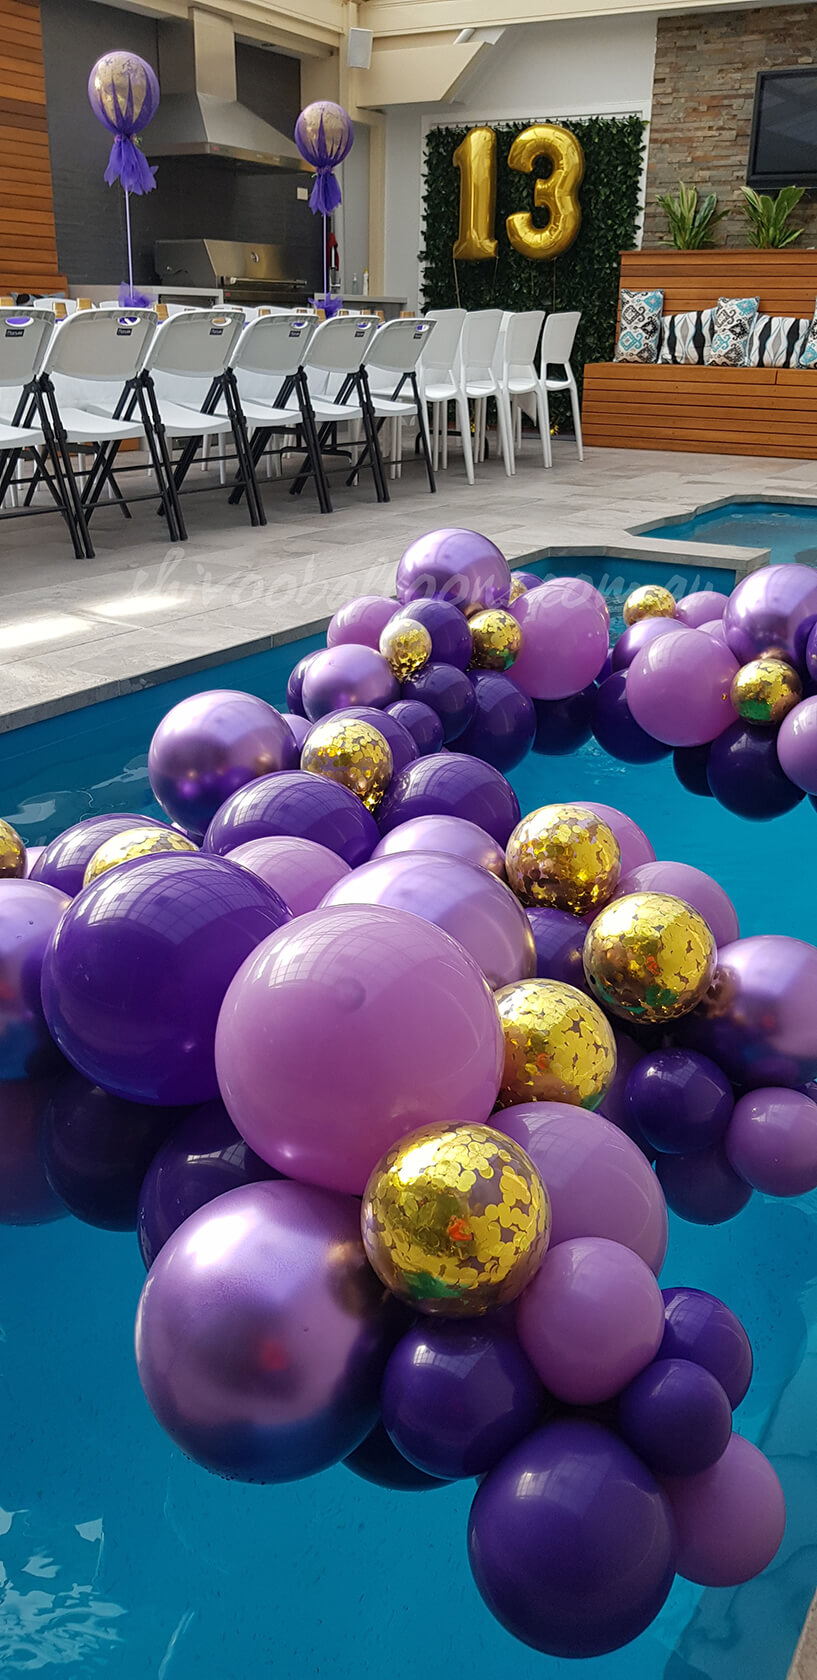 CE-49 - corporate - Balloons Coburg North - shivoo balloons and decor specialists in coburg north